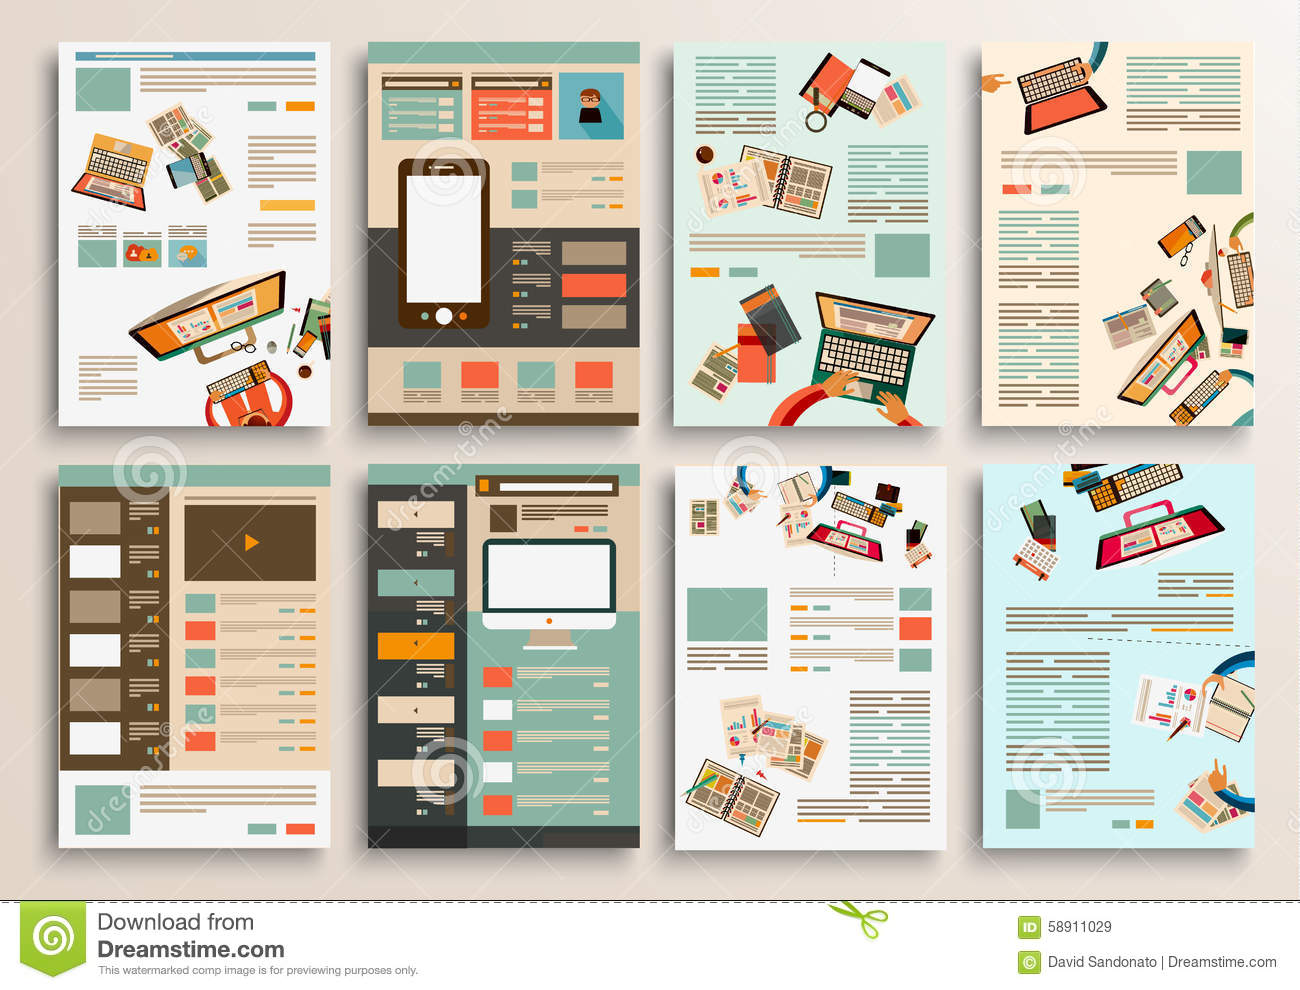 Plan for greeting card company toy company business plan reference for business magicingreecefo Image collections